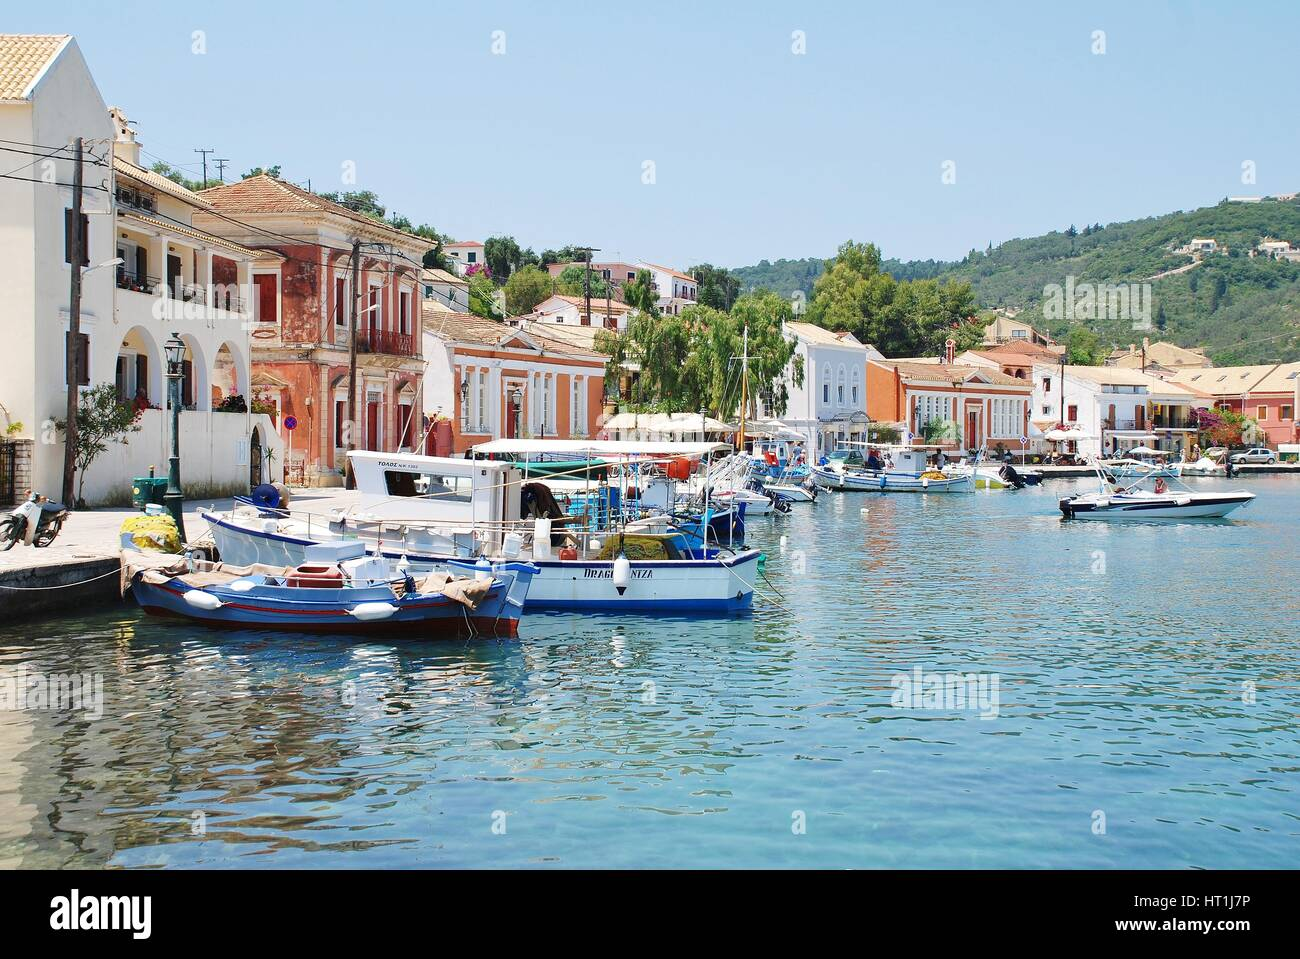 Small boats moored in the harbour at Gaios, the Capital of the Greek island of Paxos. - Stock Image